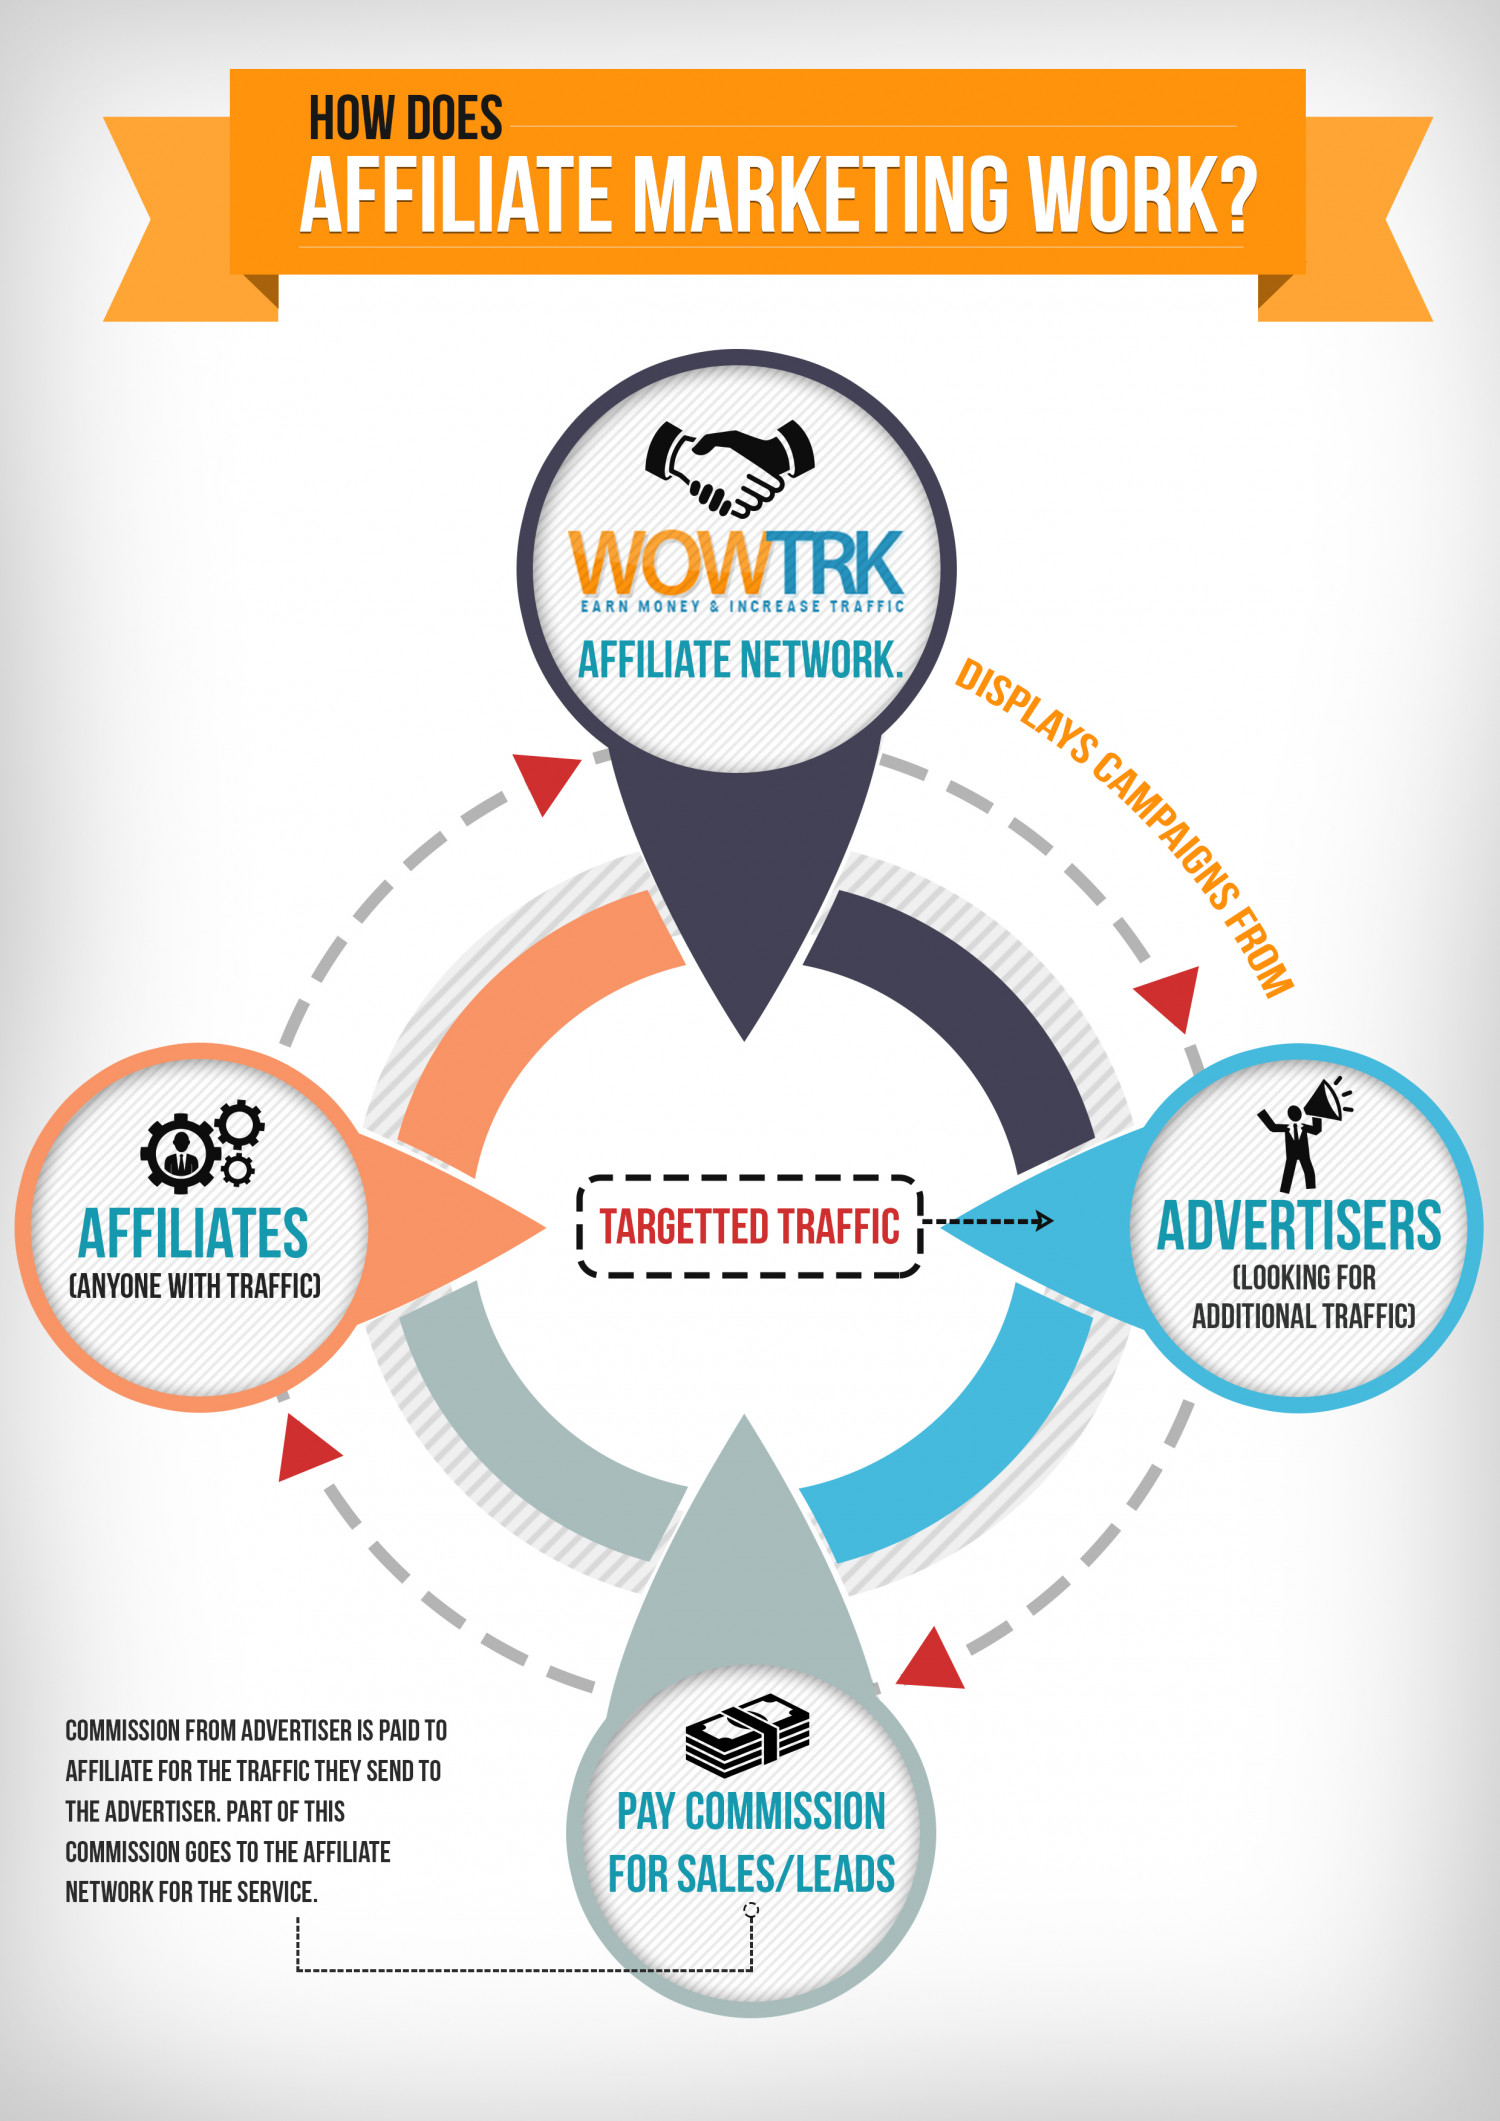 How does Affiliate Marketing Work? Infographic